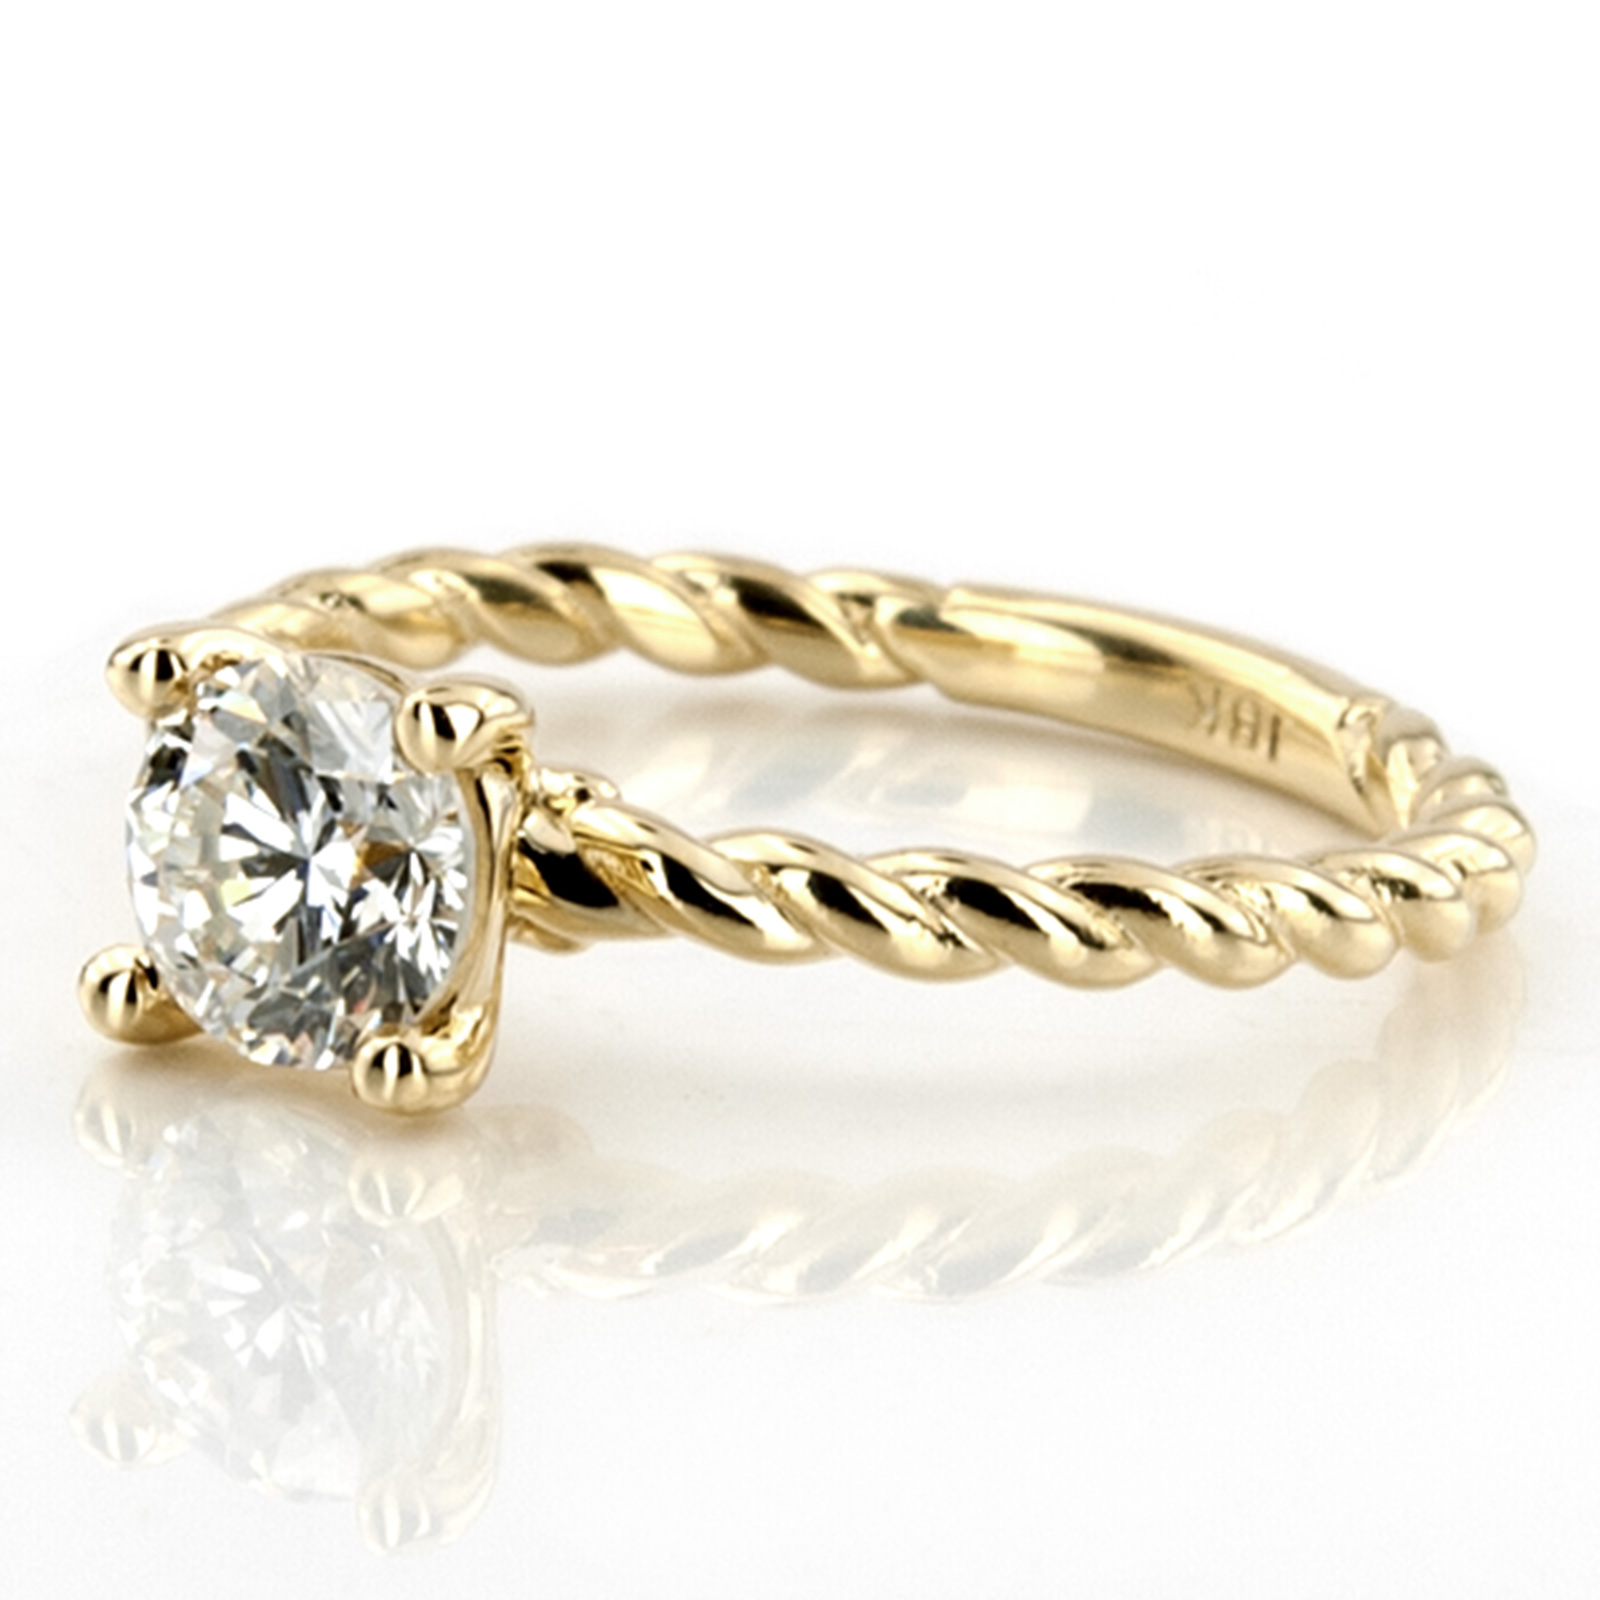 Jewelry, Women's Rings, Yellow Gold, Engagement Rings, Radiant Cut Engagement Ring